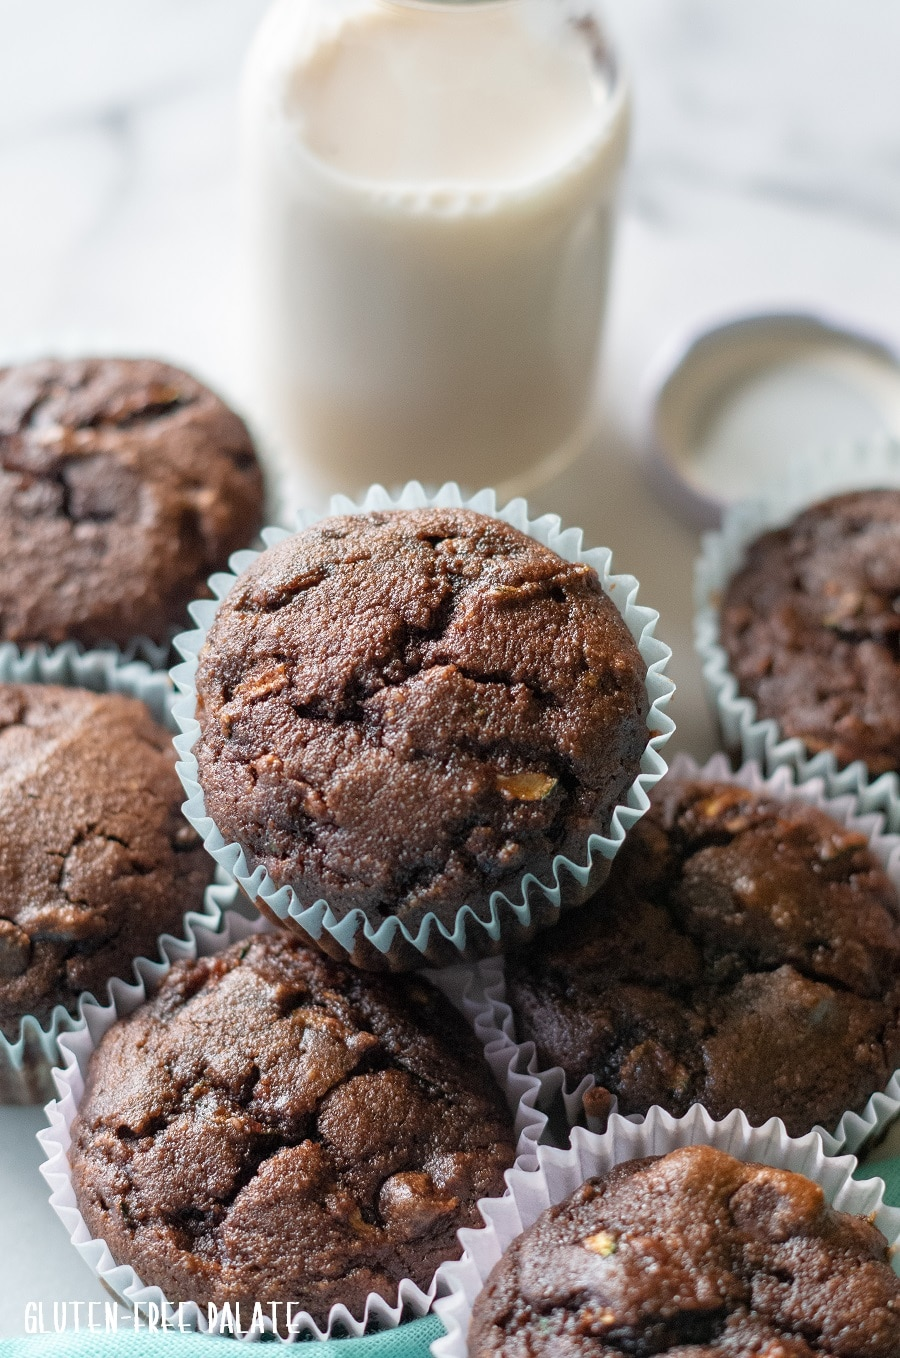 a close up of a chocolate muffin resting on top of other chocolate muffins